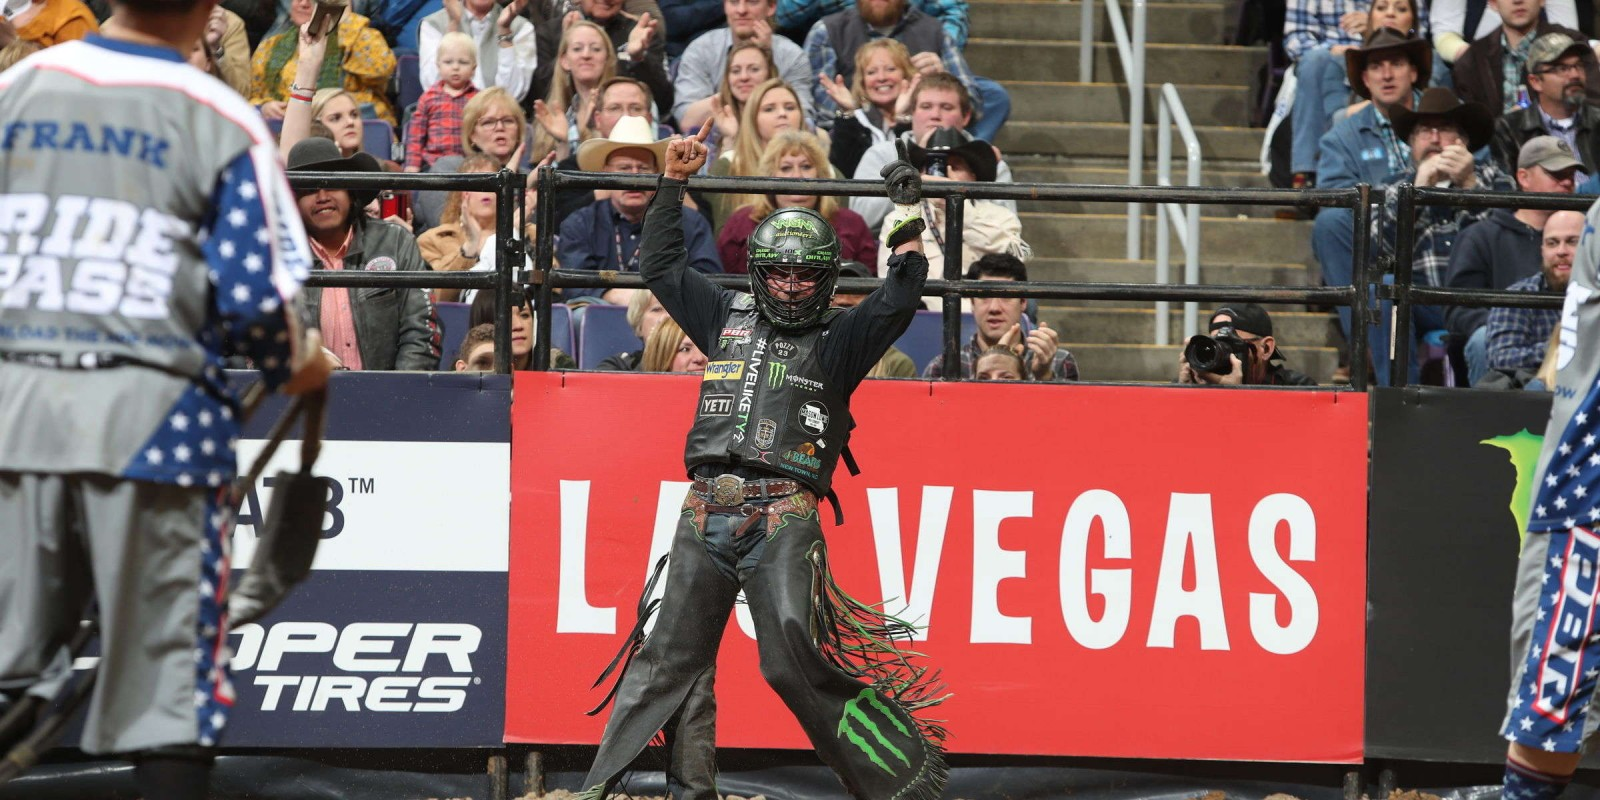 Images from the St. Louis PBR Unleash the Beast